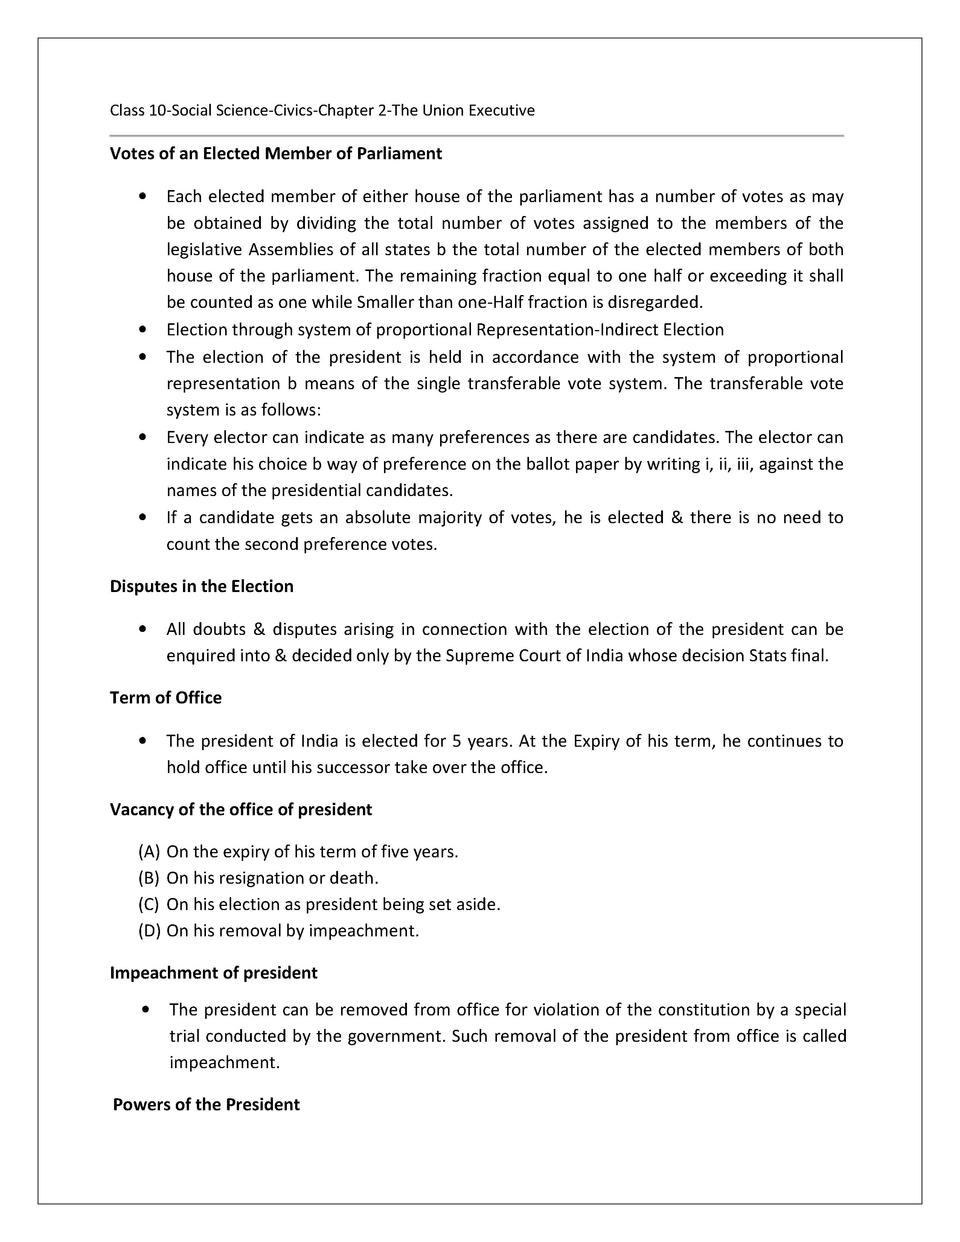 worksheet for class 10 science chapter 1 ncert solutions for class 10 social science civics. Black Bedroom Furniture Sets. Home Design Ideas